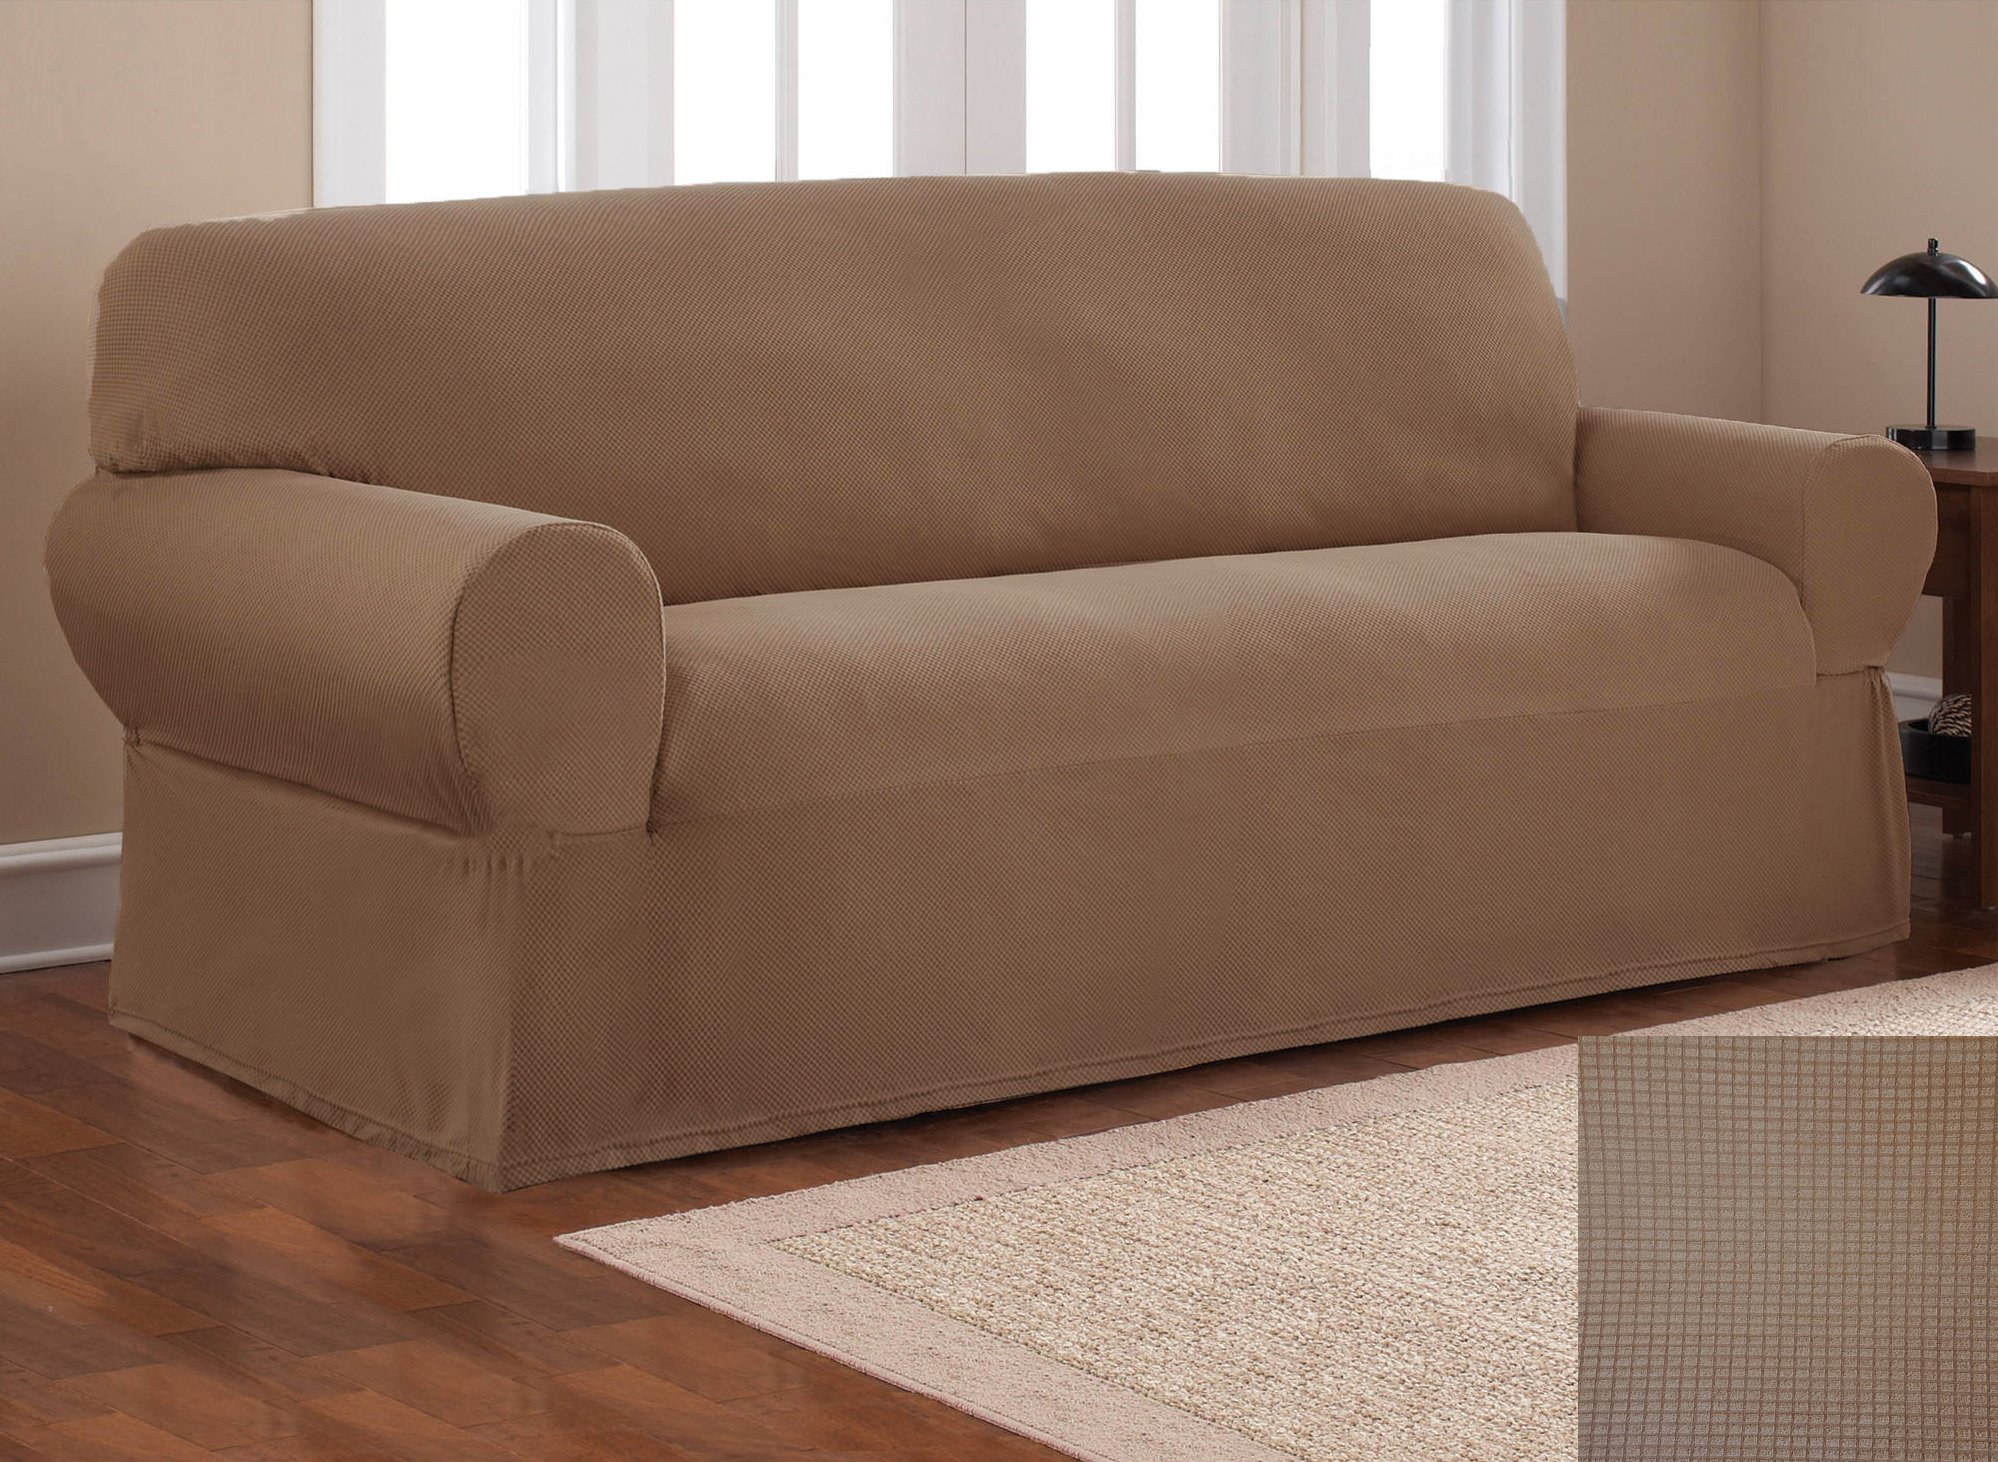 Fancy Collection Sure Fit Stretch Fabric Sofa Slipcover Sofa And Love Seat Covers Solid New #Stella (Light Brown, 3 pc Set)